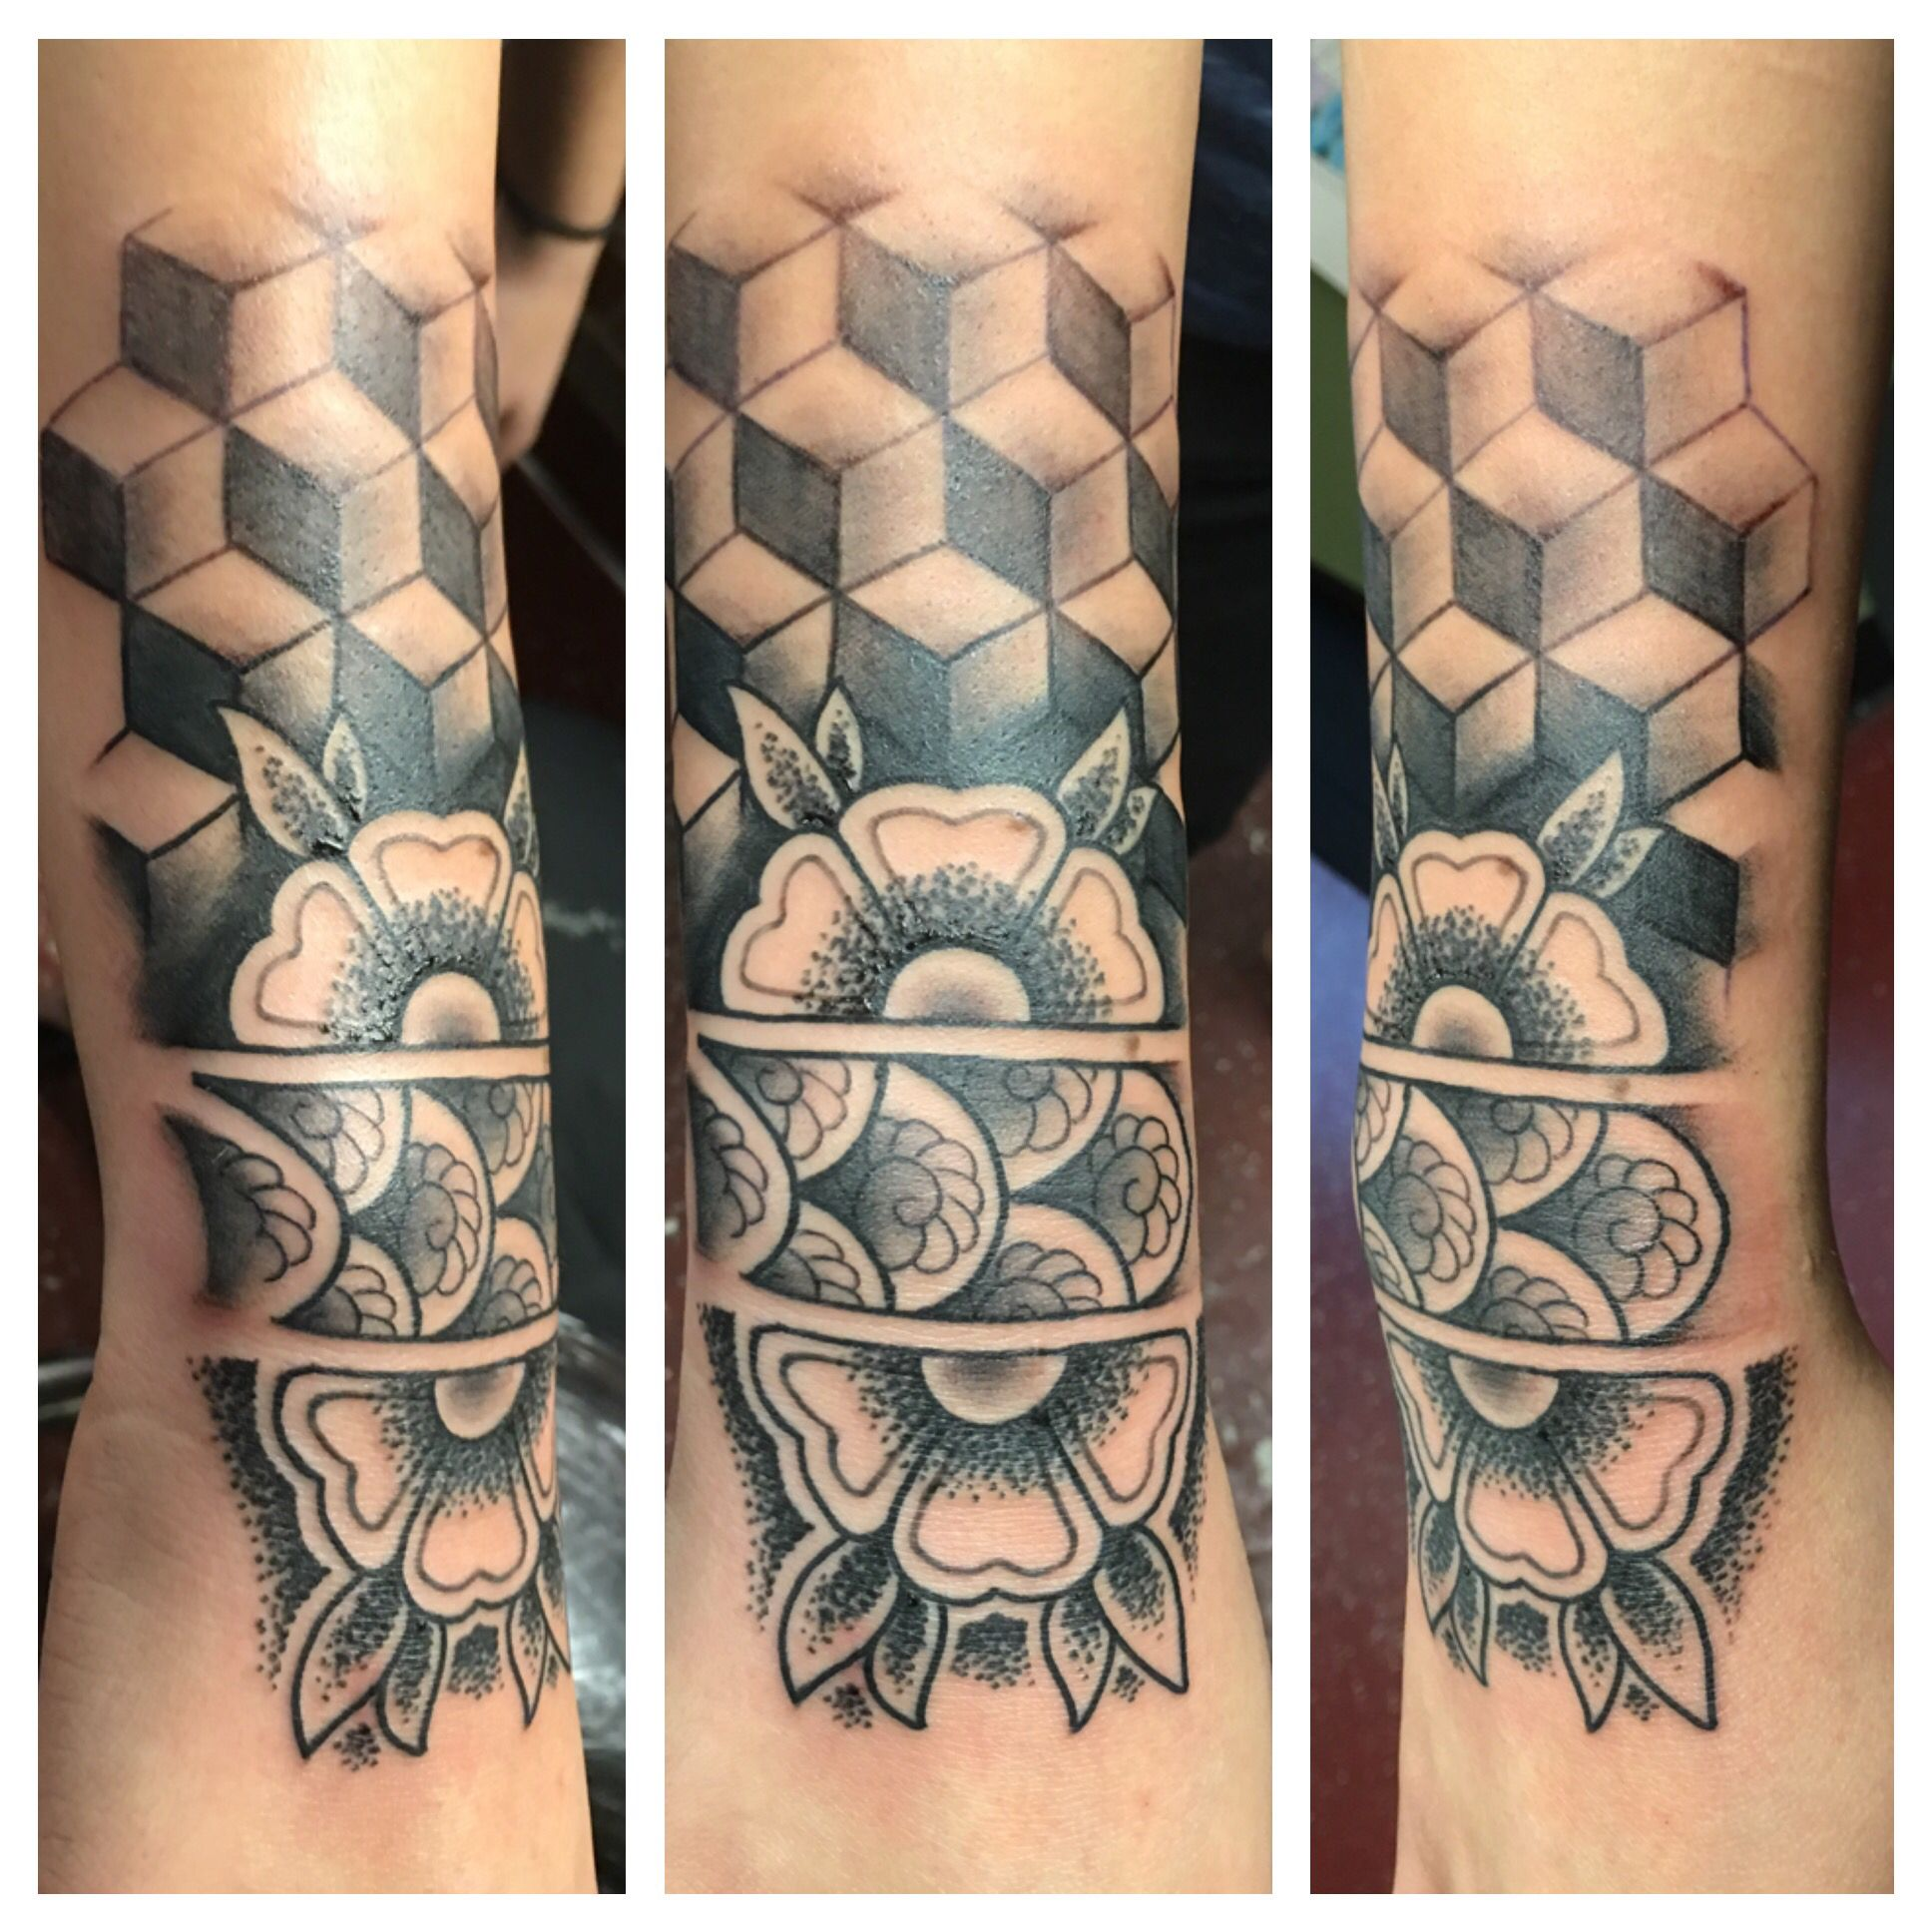 Mandala sacred geometry tattoo @robert_tattooer